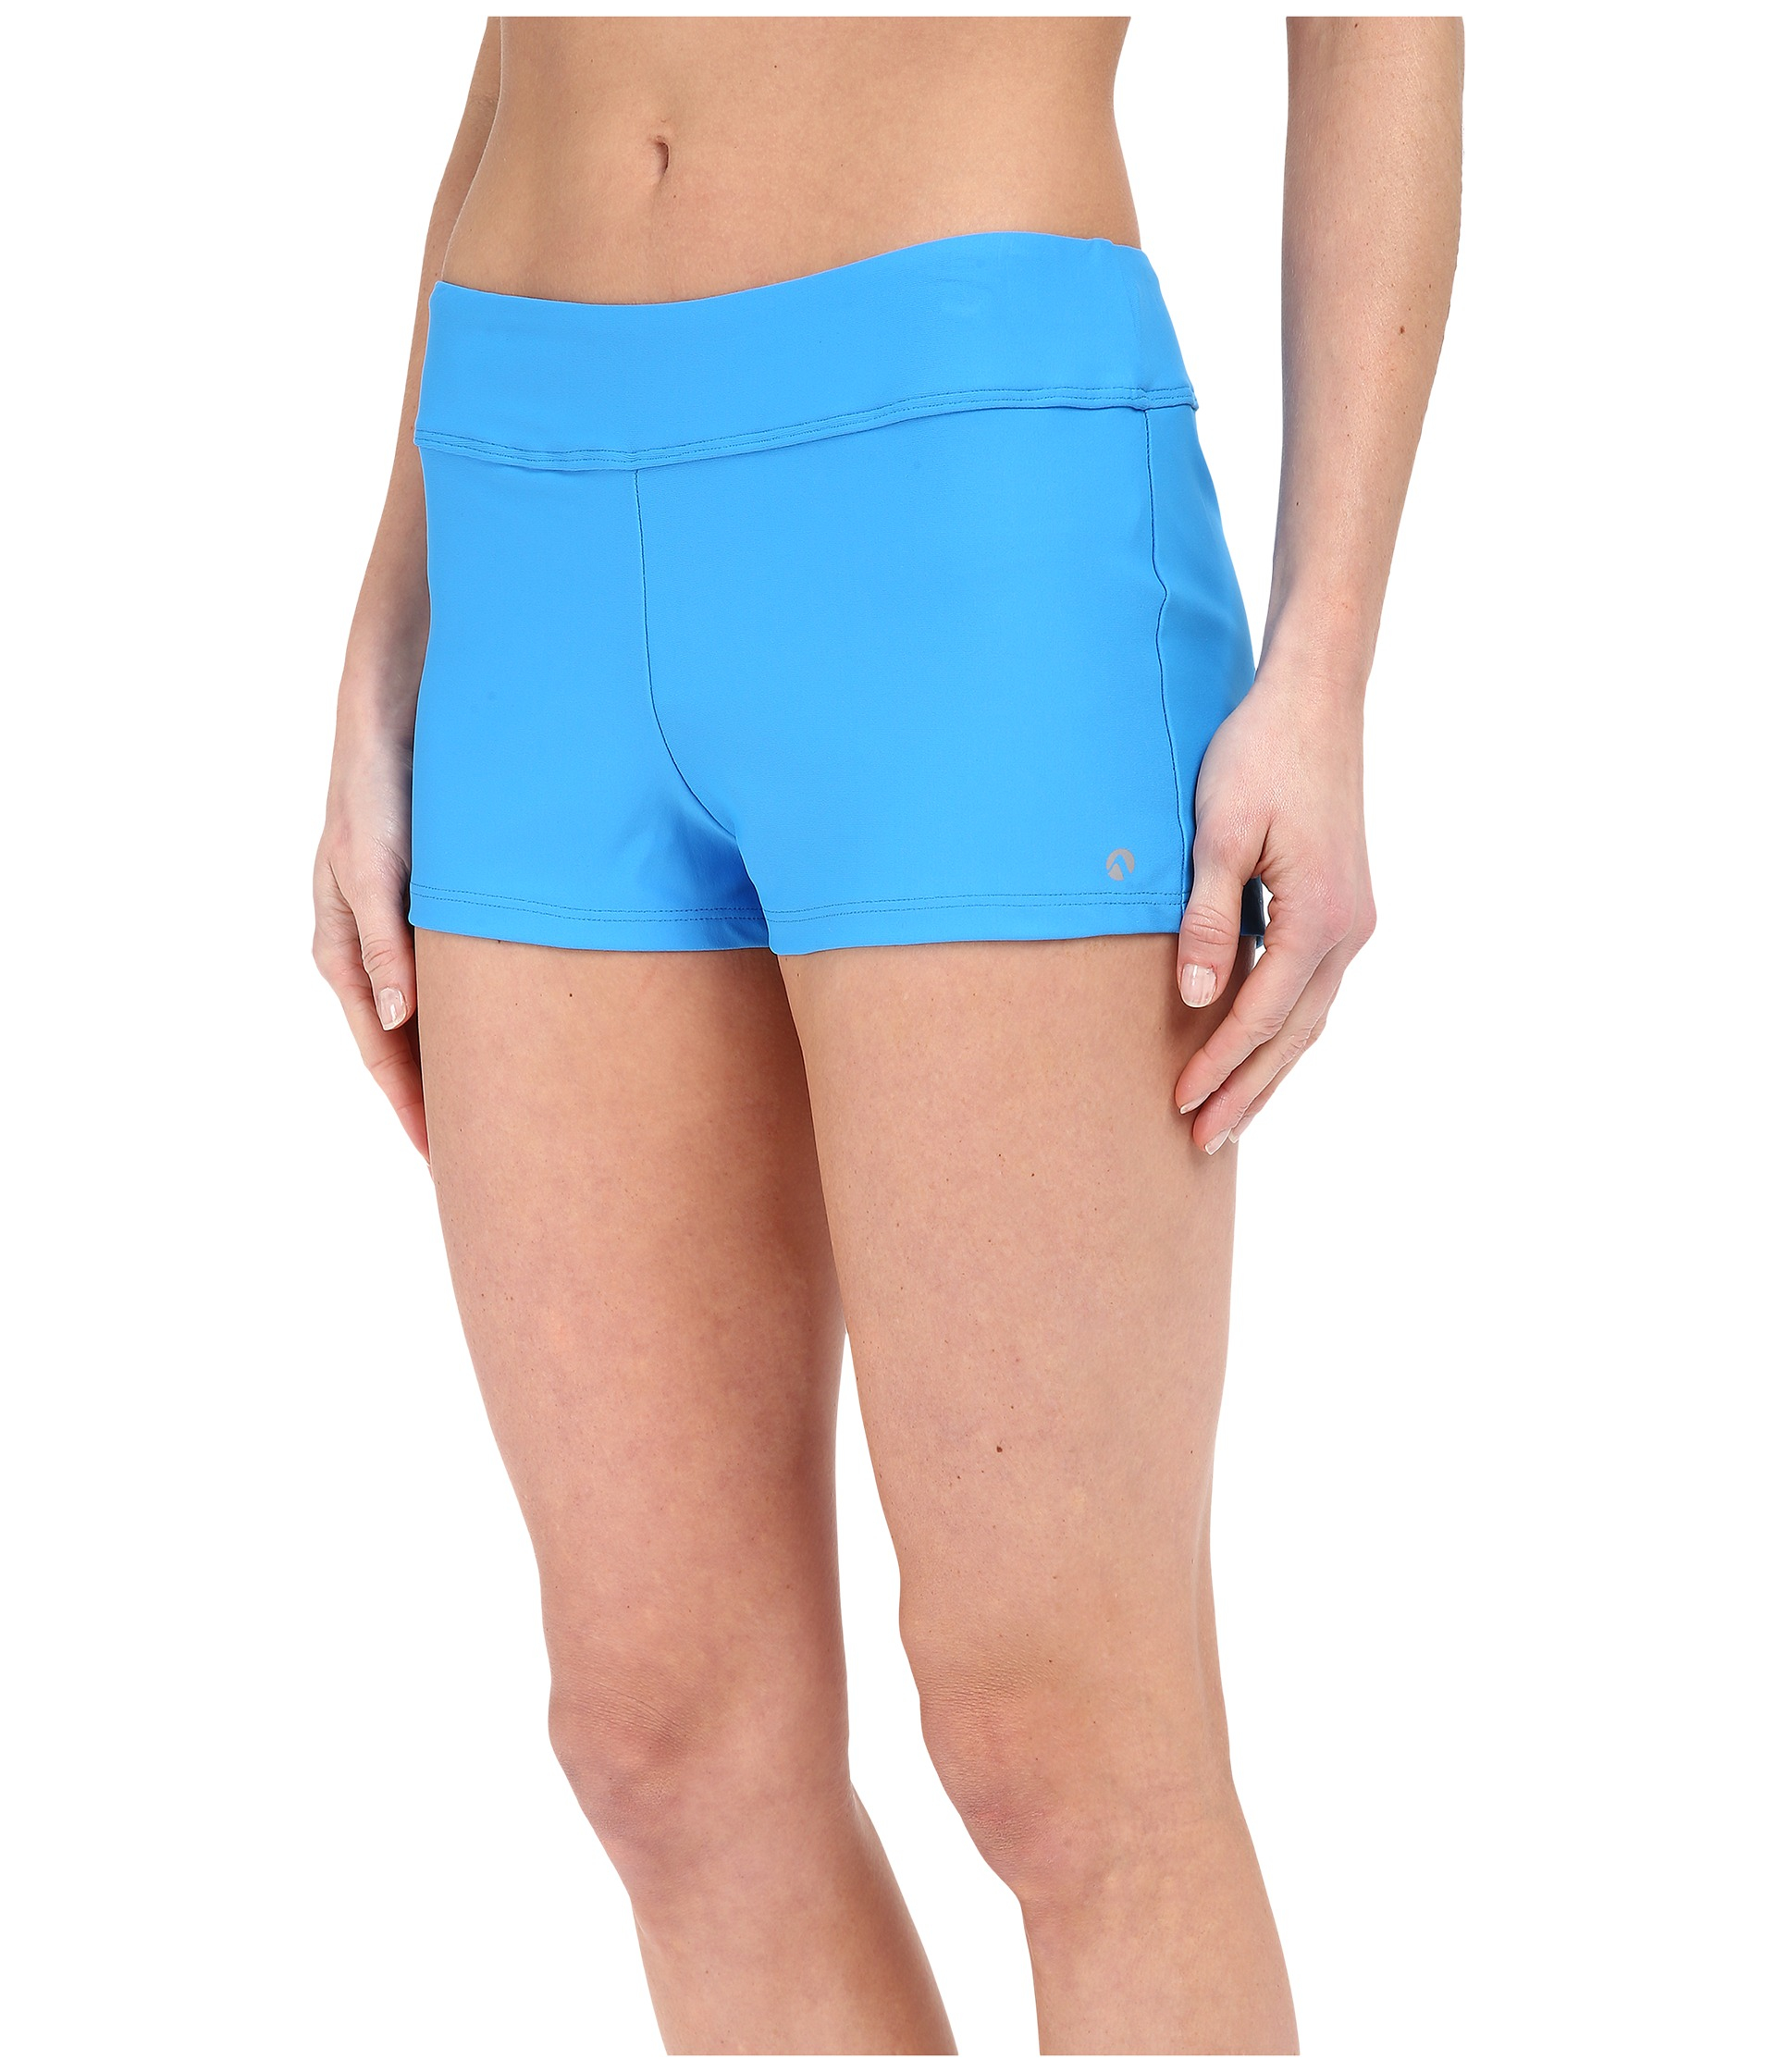 68621f3db9 Next By Athena Good Karma Jump Start Swim Shorts in Blue - Lyst